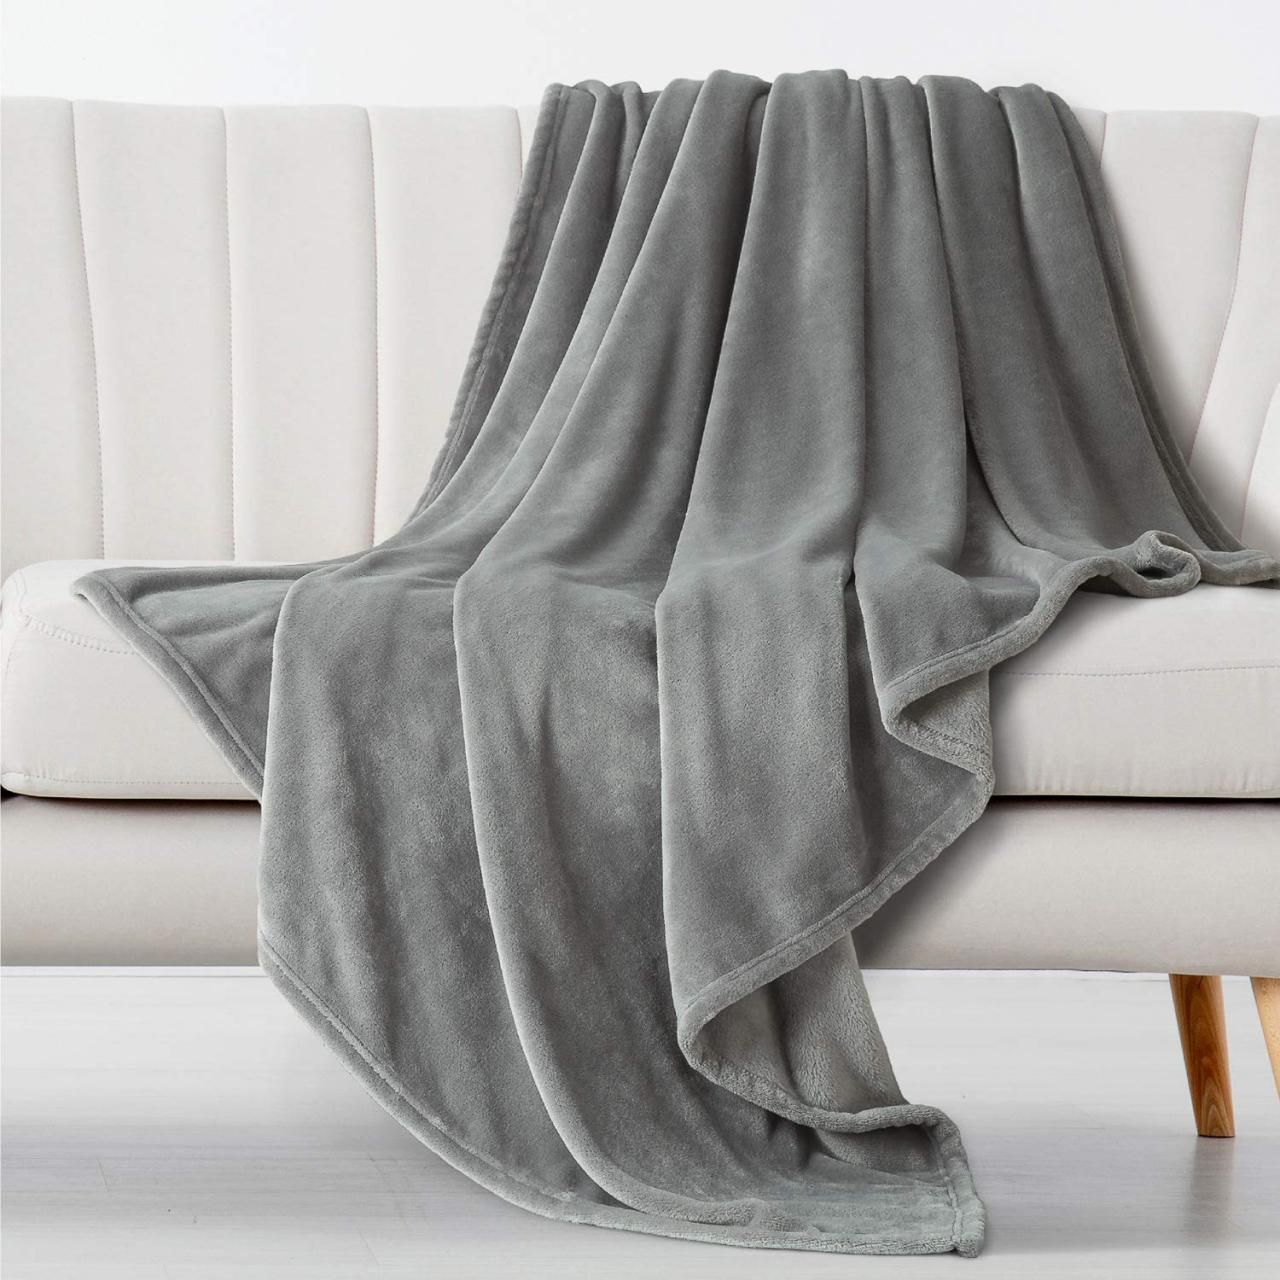 Flannel Fleece Blanket All-Season Anti-Static Throw/Blanket for Sofa Couch Bed (78'' x 90''),Gray